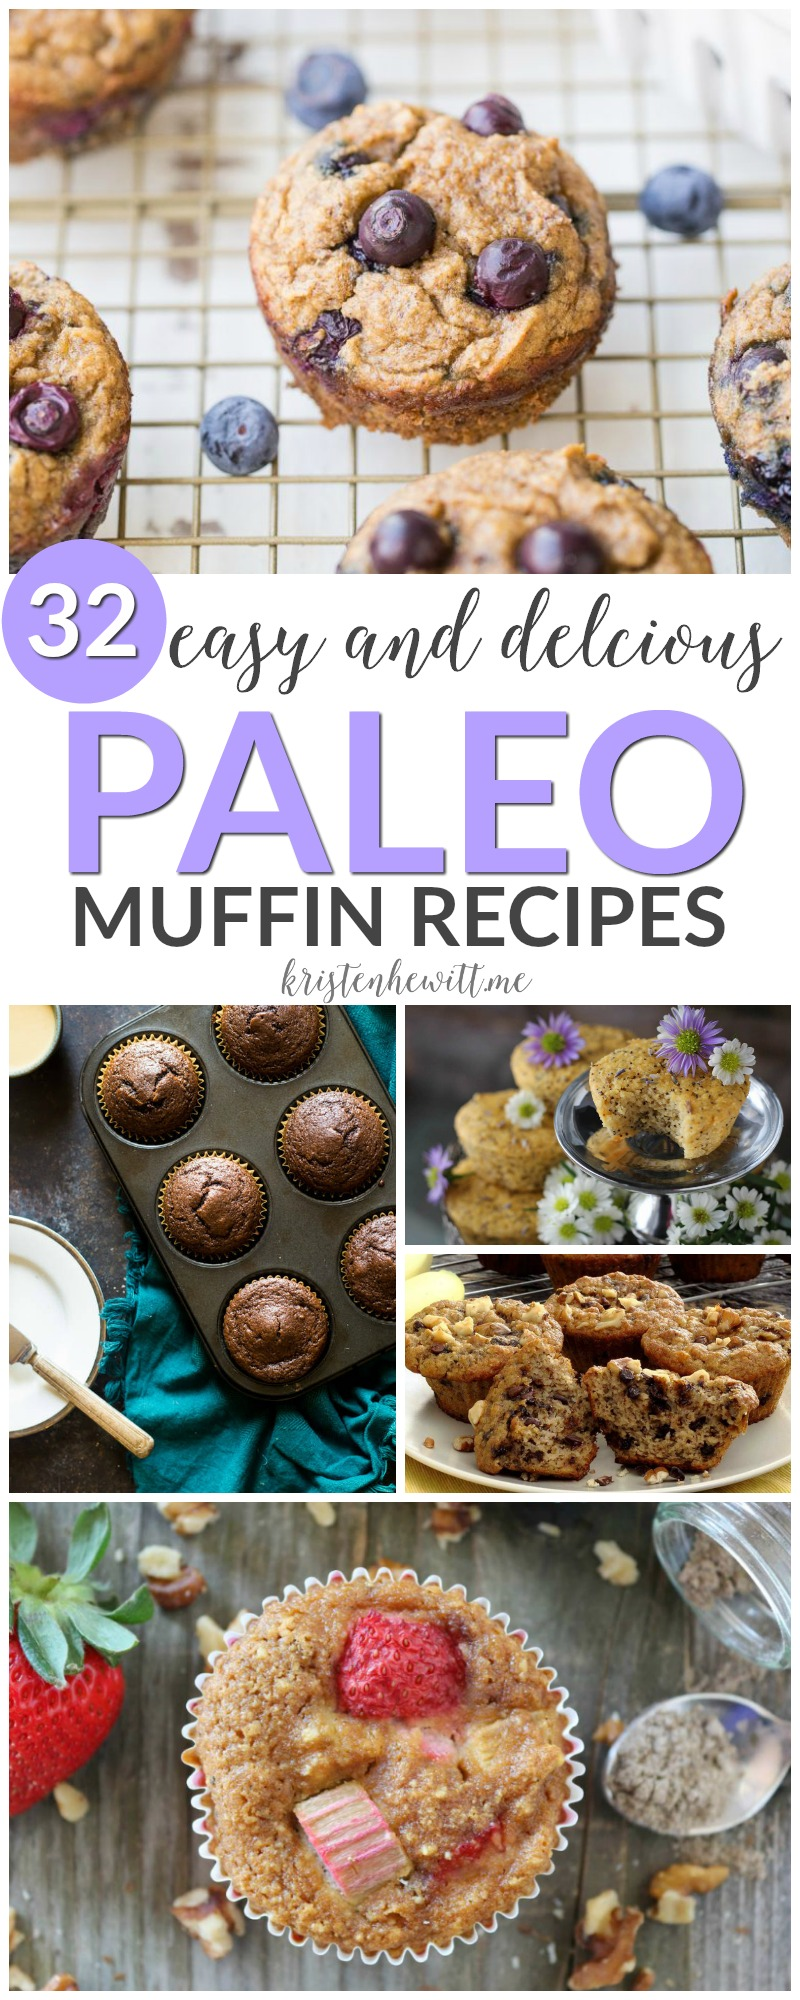 Looking for a snack that's healthy and filling? Try one of these 32 DELISH paleo muffins! So easy to whip up and freeze for later.